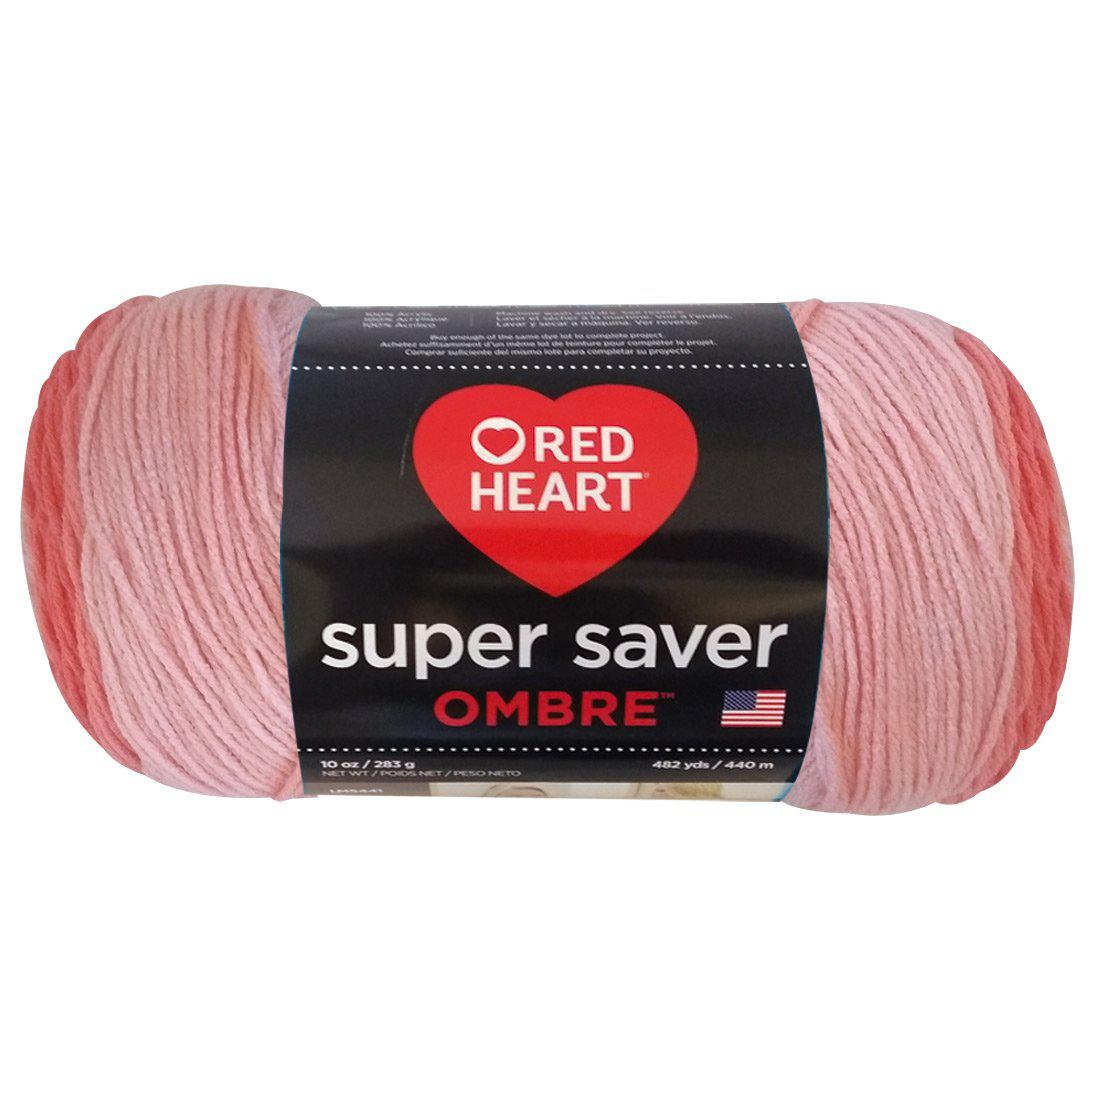 Estambre Super Saver Ombré, Marca Red Heart, Madeja con 283 gr